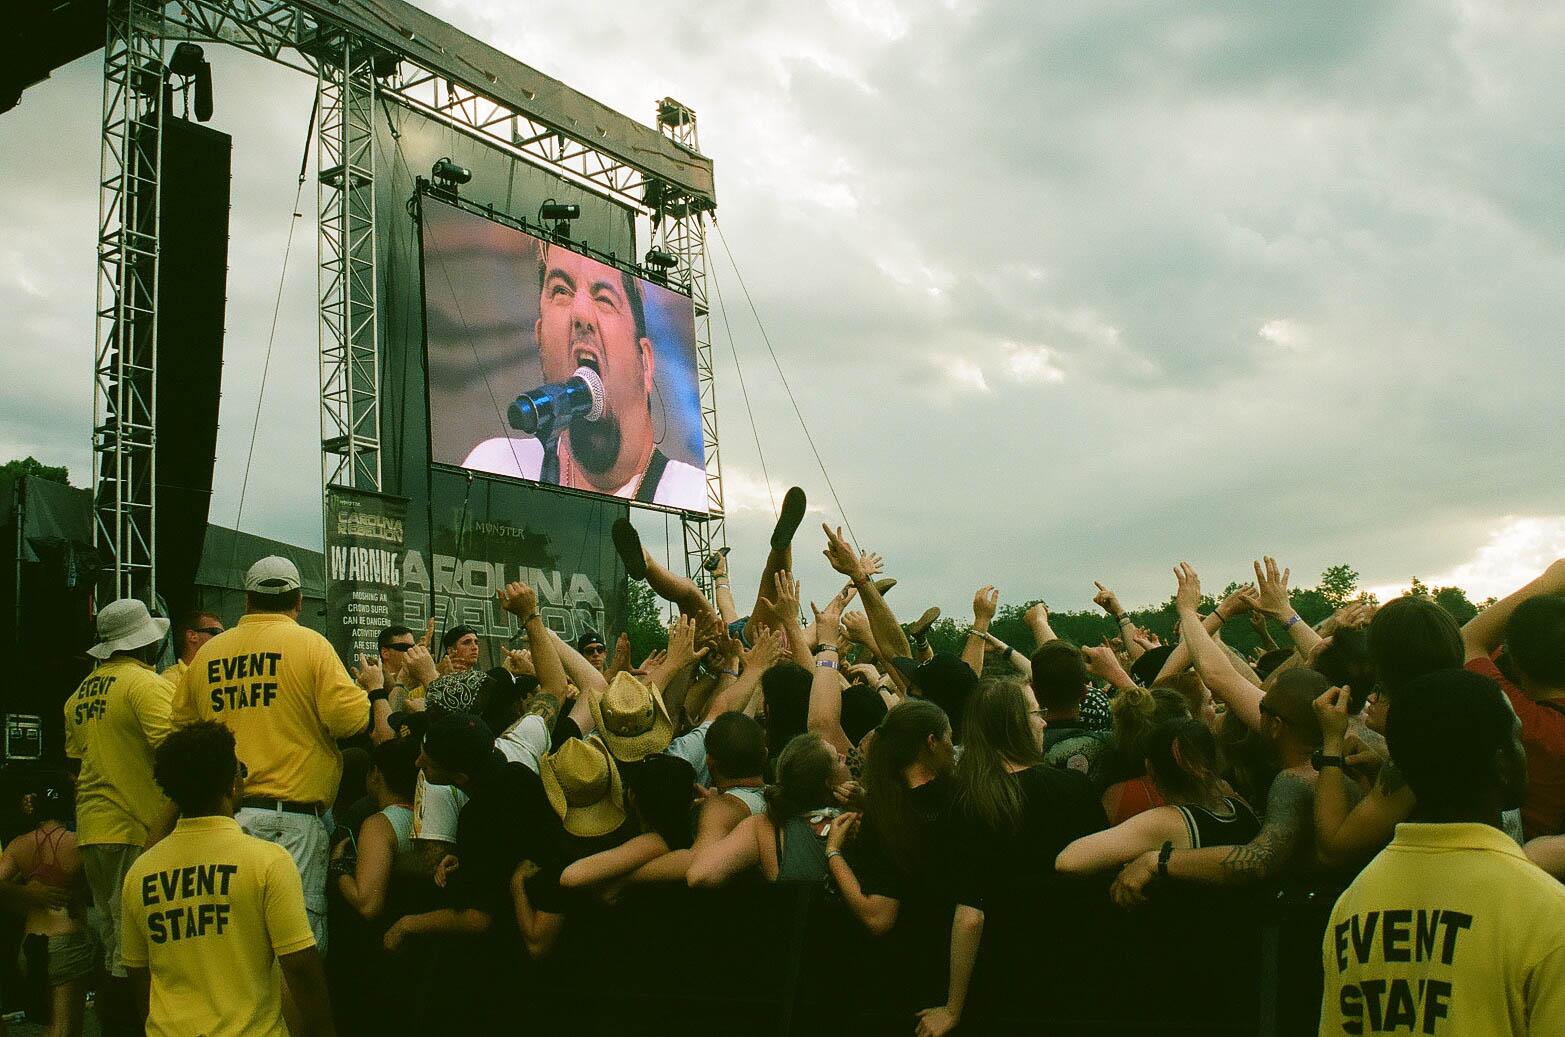 The crowd goes wild during the Deftones set.